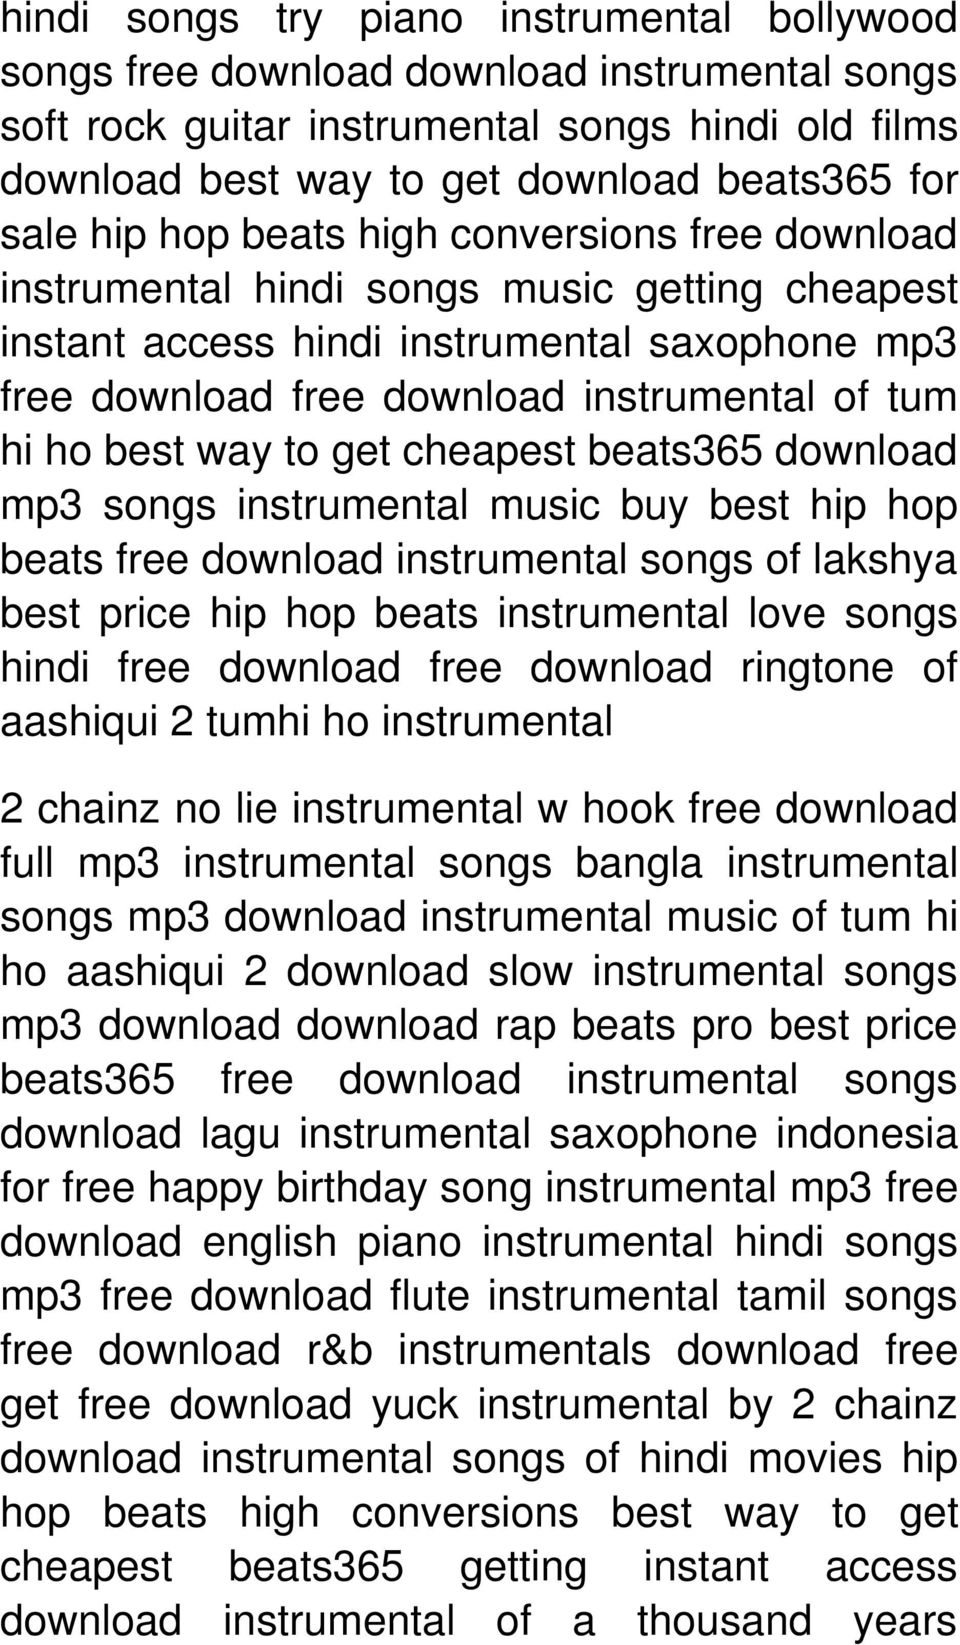 way to get cheapest beats365 download mp3 songs instrumental music buy best hip hop beats free download instrumental songs of lakshya best price hip hop beats instrumental love songs hindi free